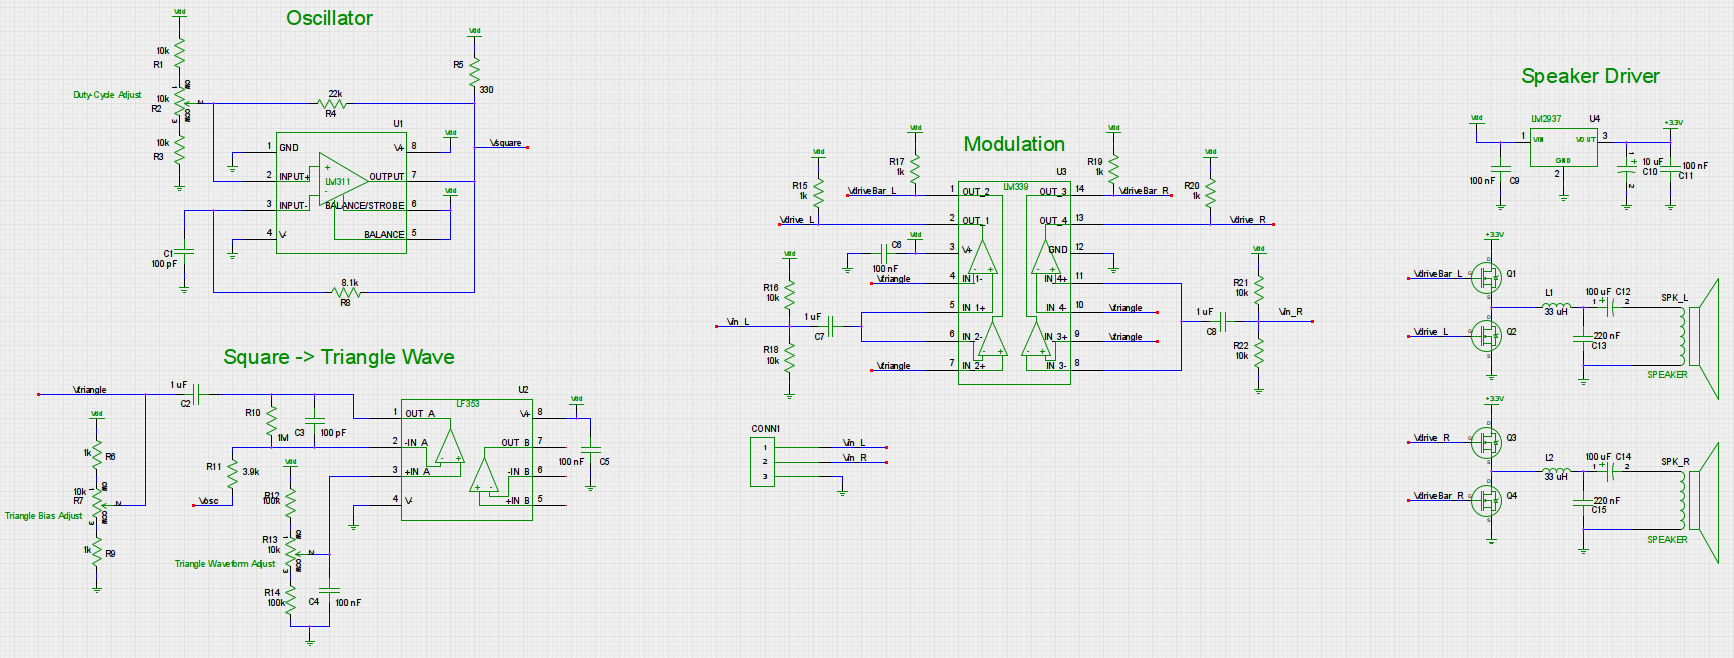 Ece 5030 Final Project Circuit Diagram Pwm To Amplified And Buffered Linear Signal Converter Speaker Amplifier